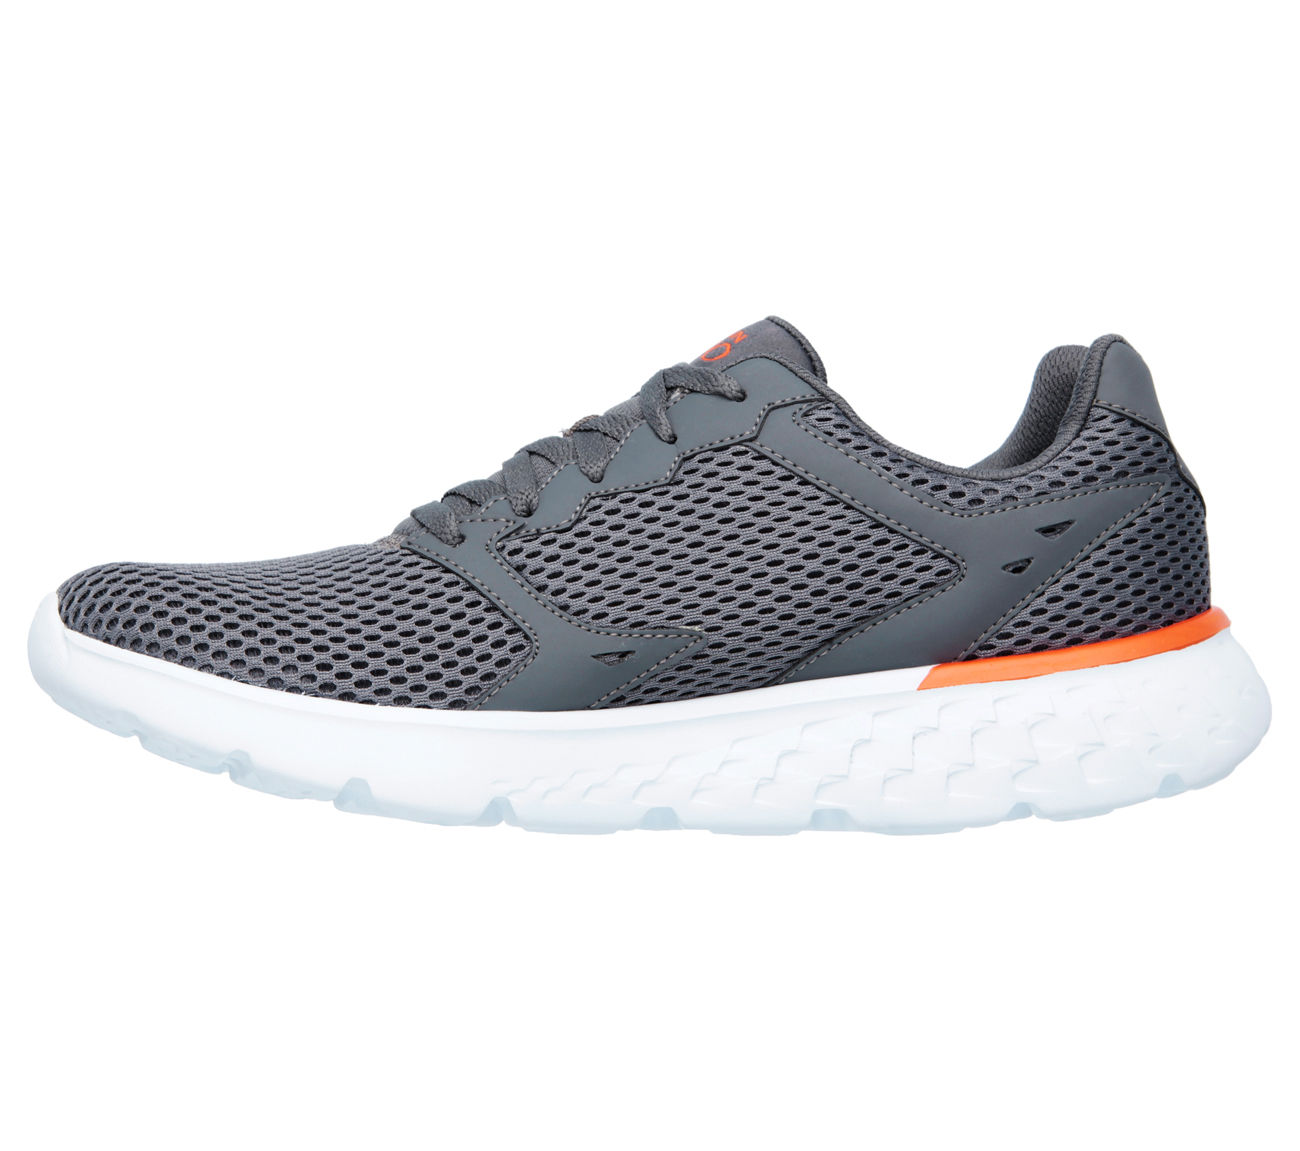 skechers go run 400. skechers go run 400 mens price